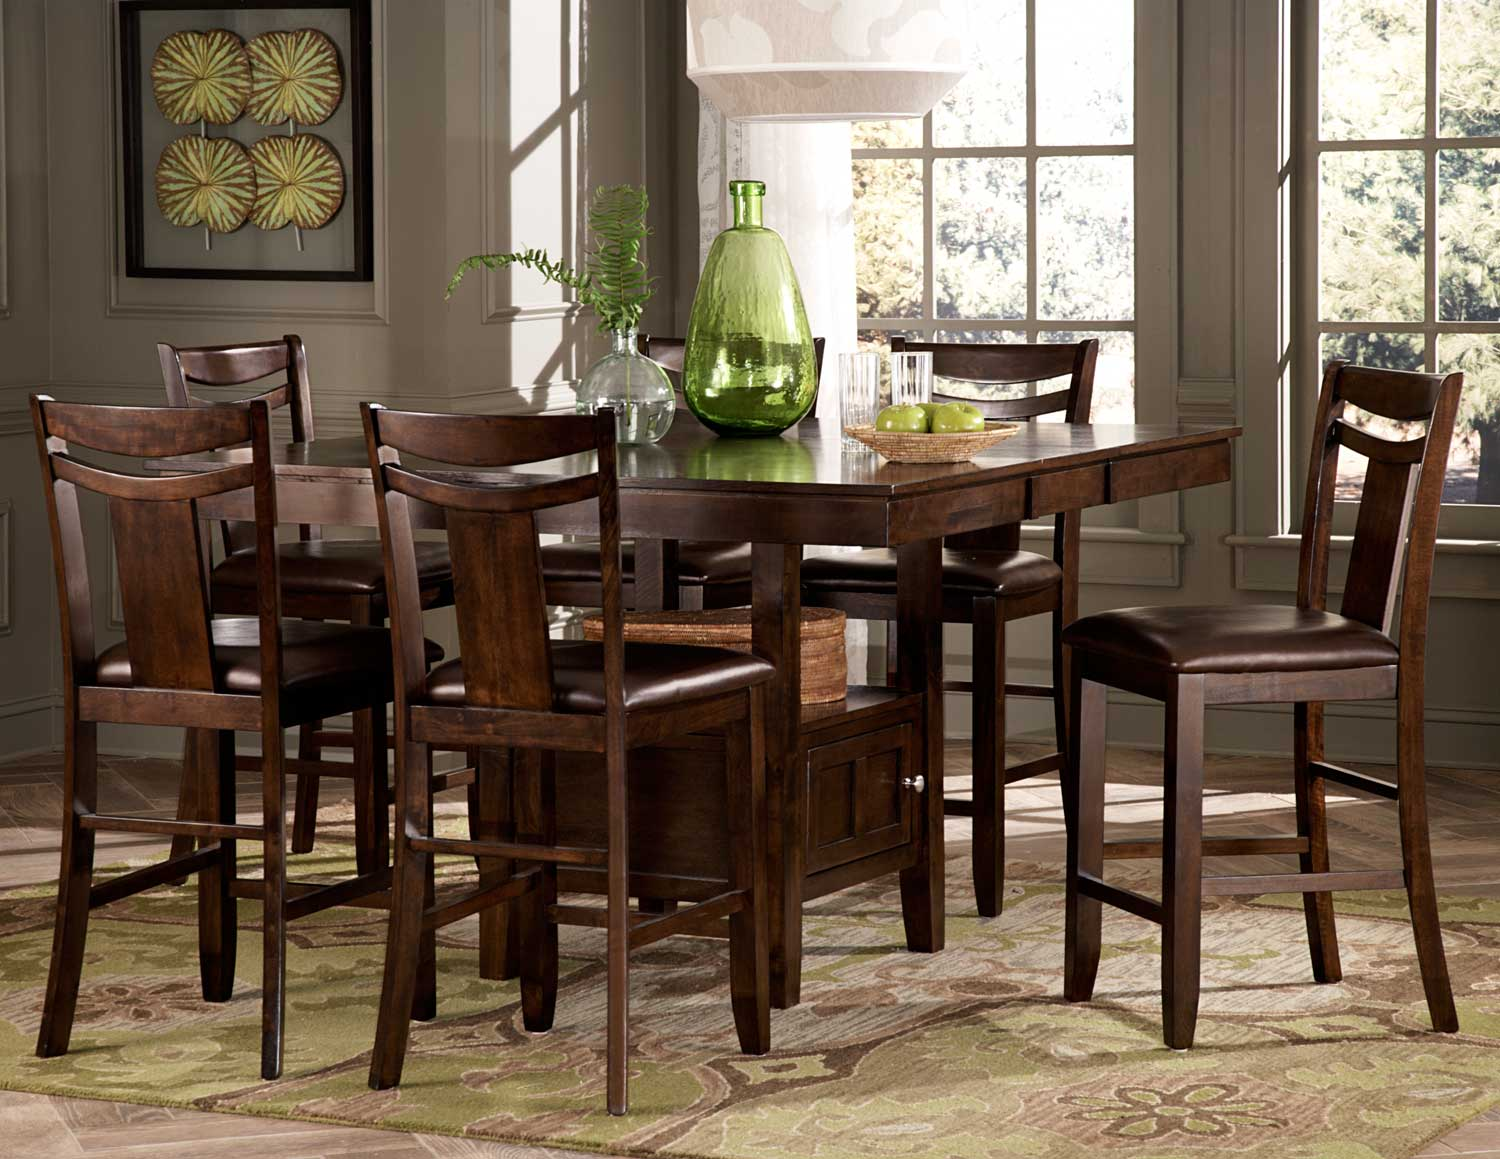 Homelegance Broome Counter Height Dining Set - Dark Brown